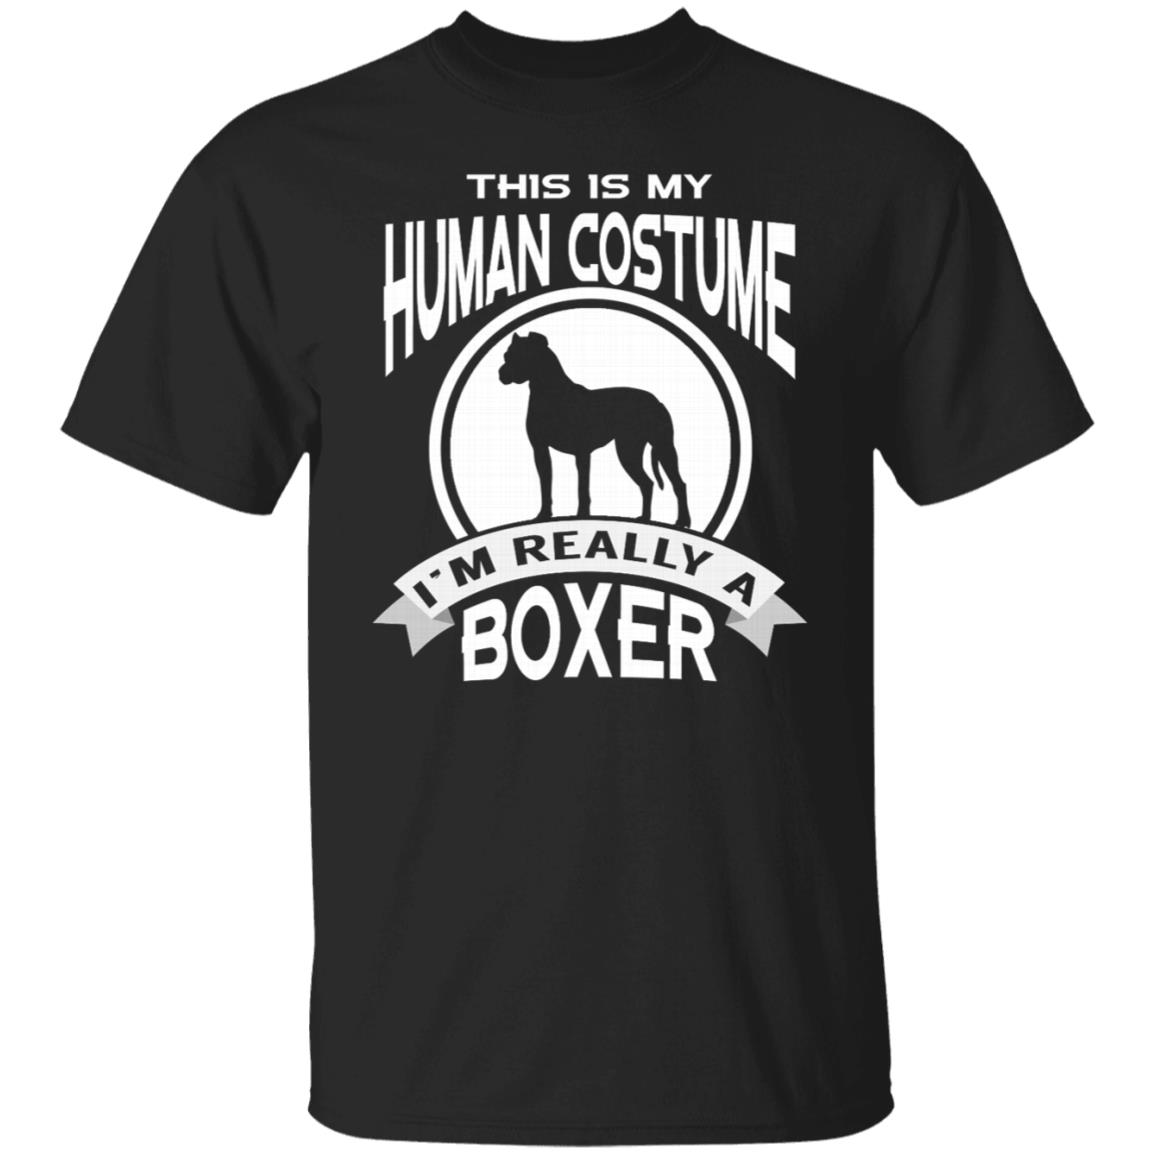 This Is My Human Costume I'm Really A Boxer Unisex Short Sleeve